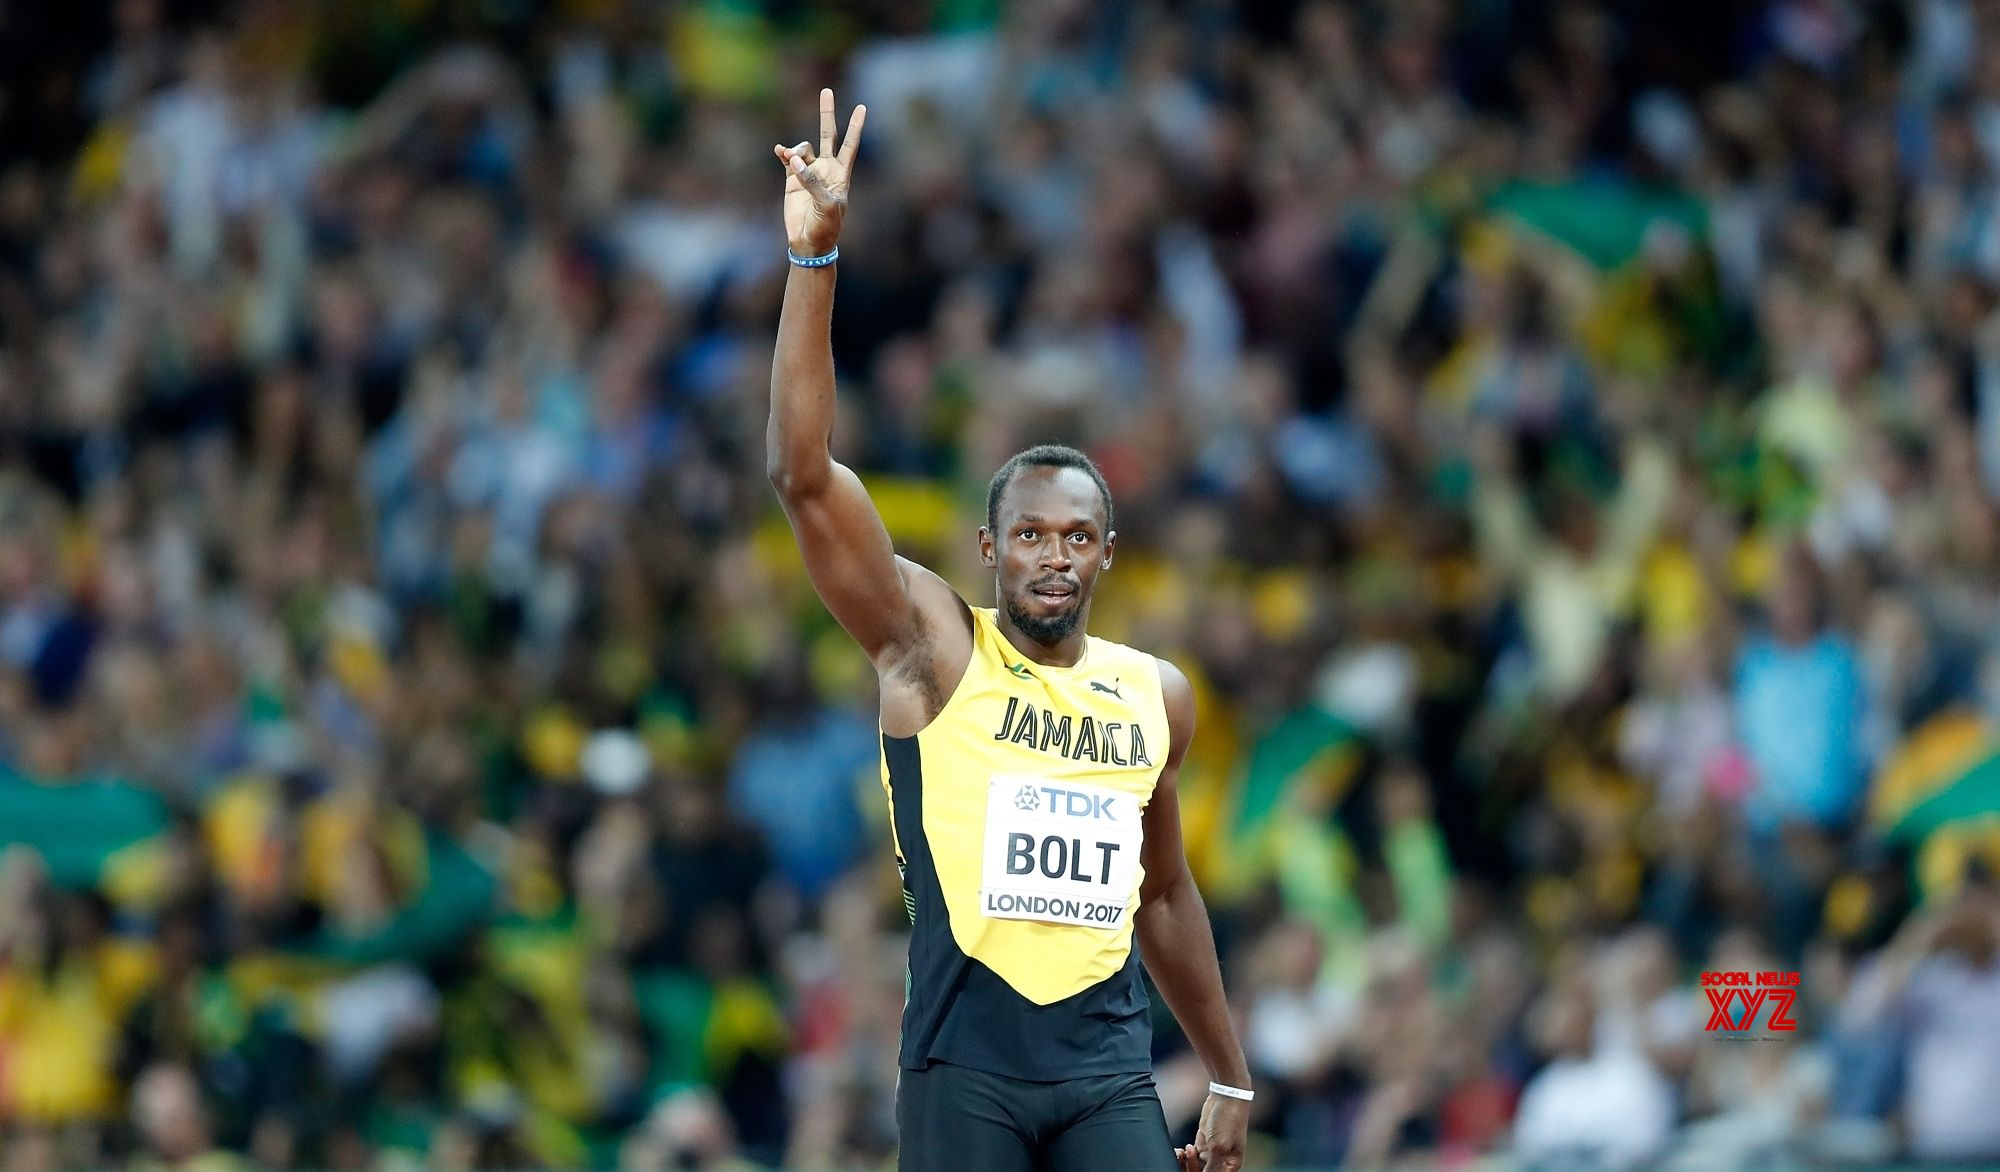 Bolt injured and crashes out in men's relay